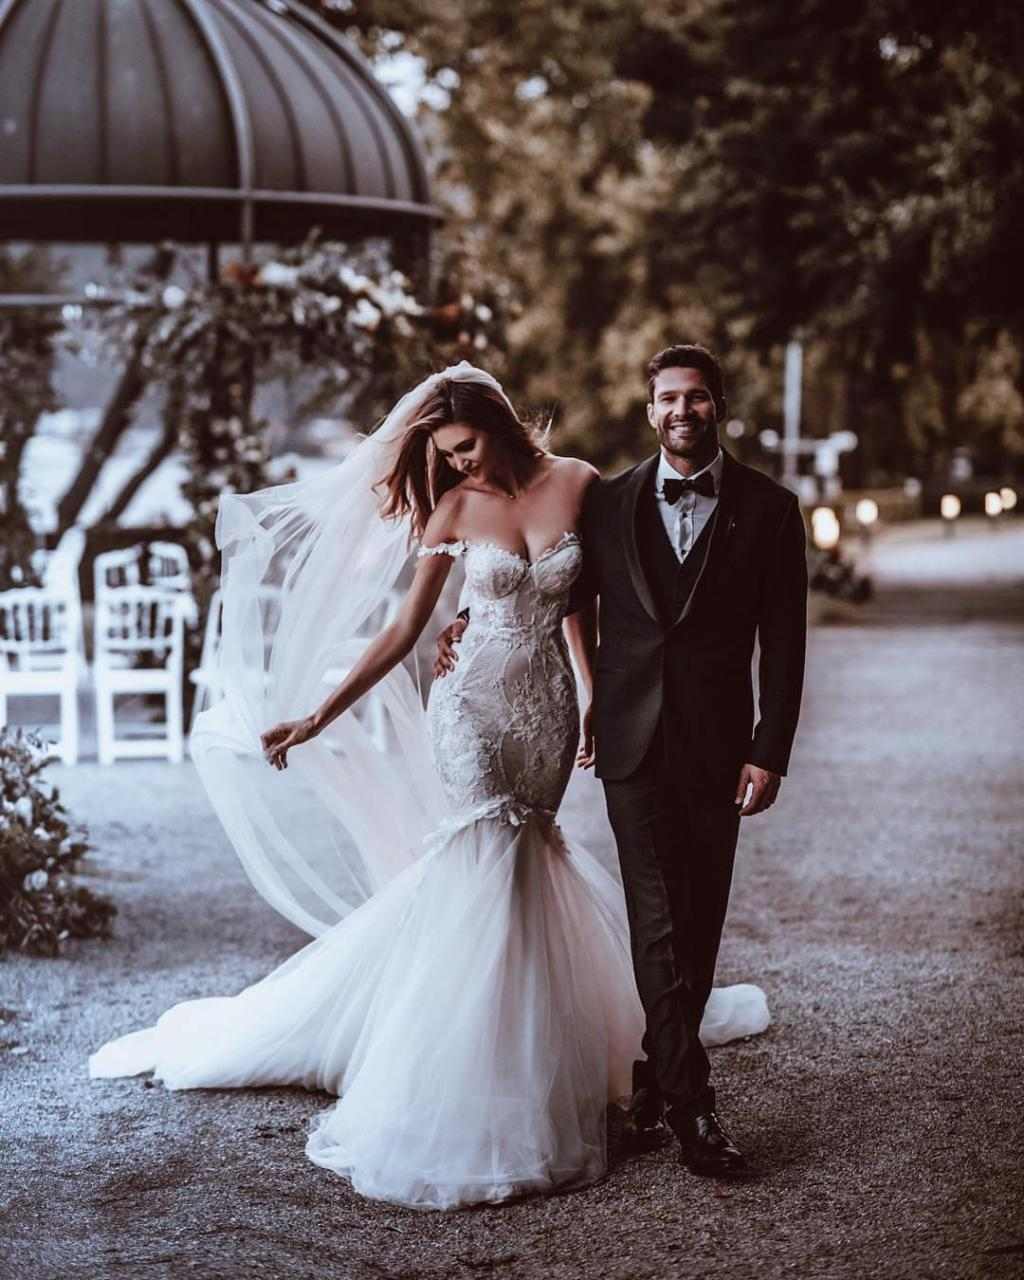 Fairytale Wedding Dresses.From A Mermaid Wedding Dress To The Perfect Location This Is